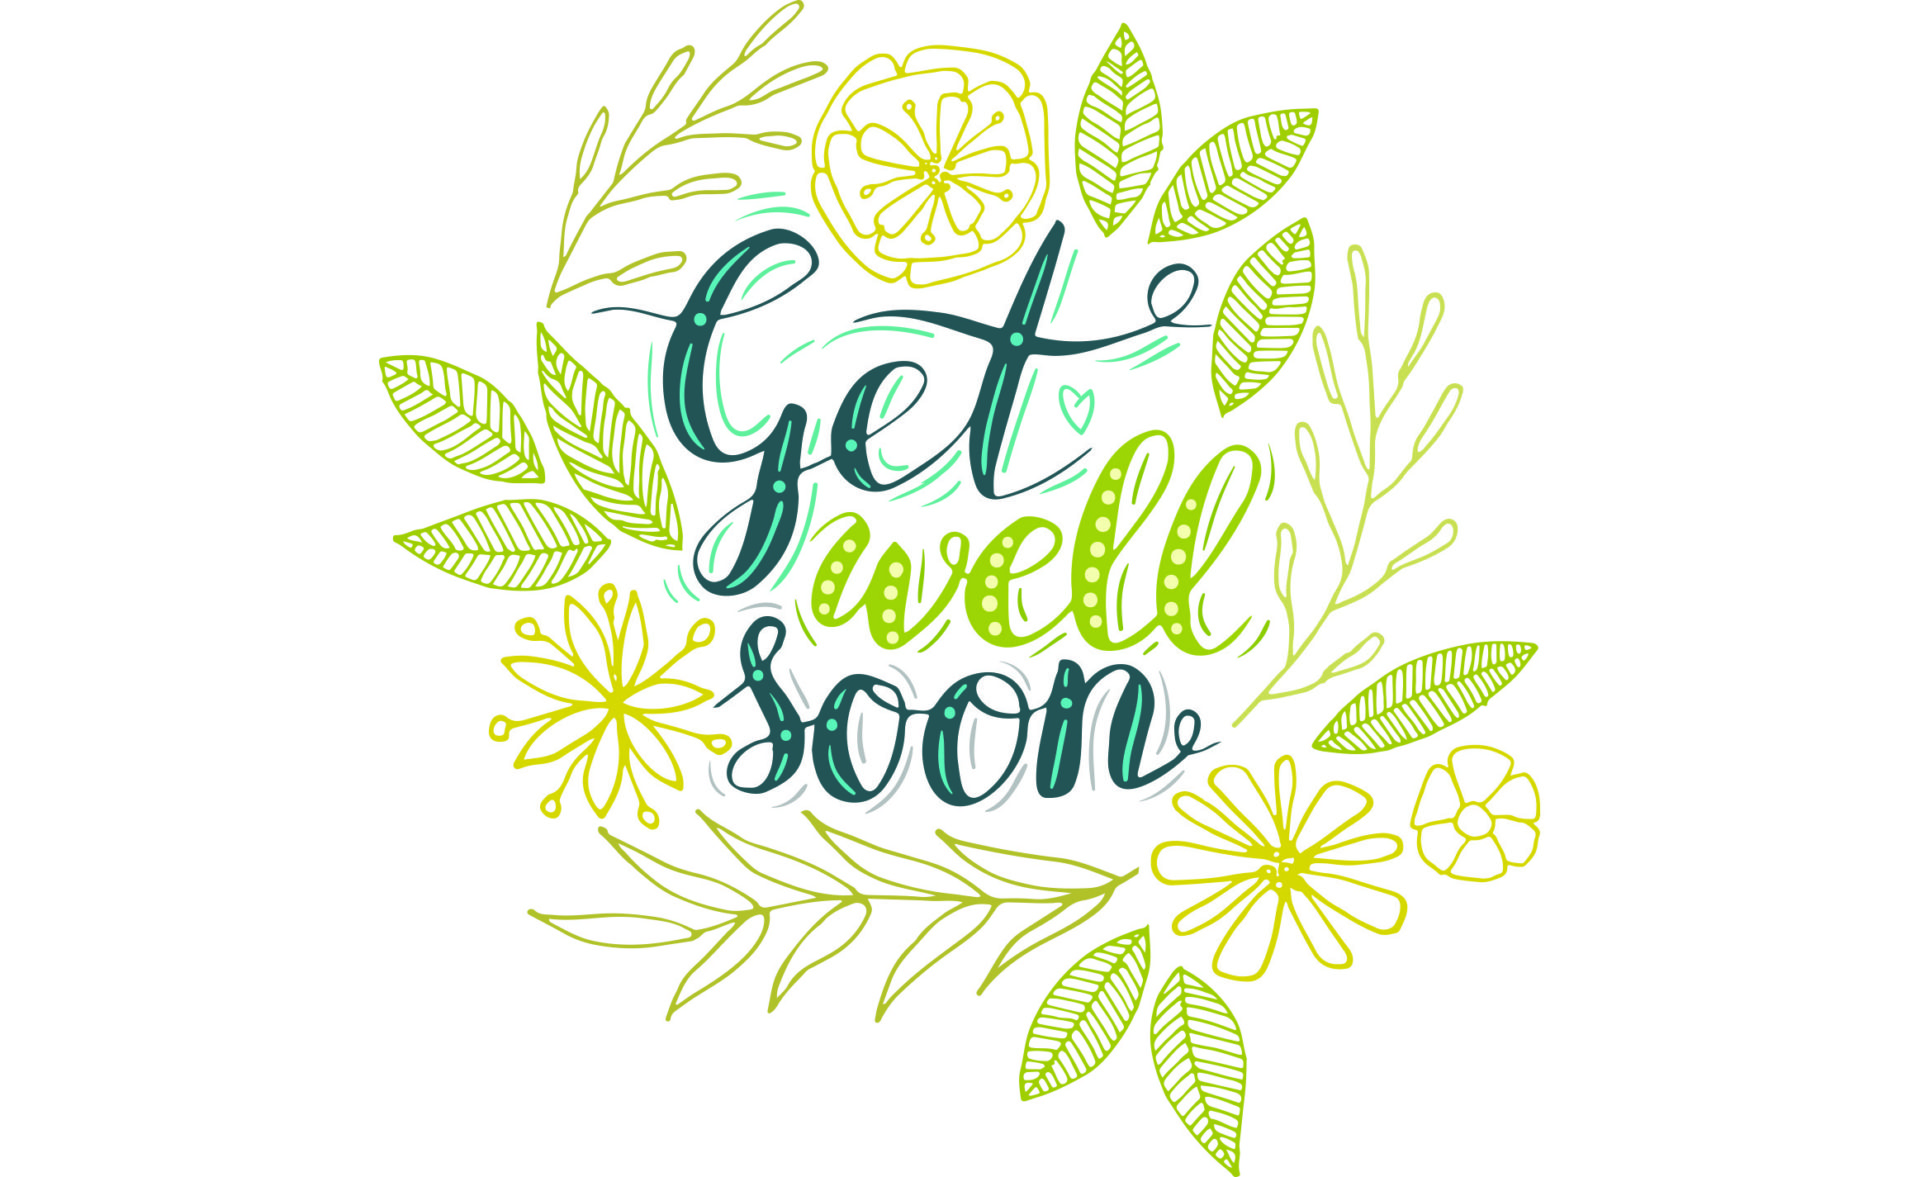 Get Well Soon Med Center Health